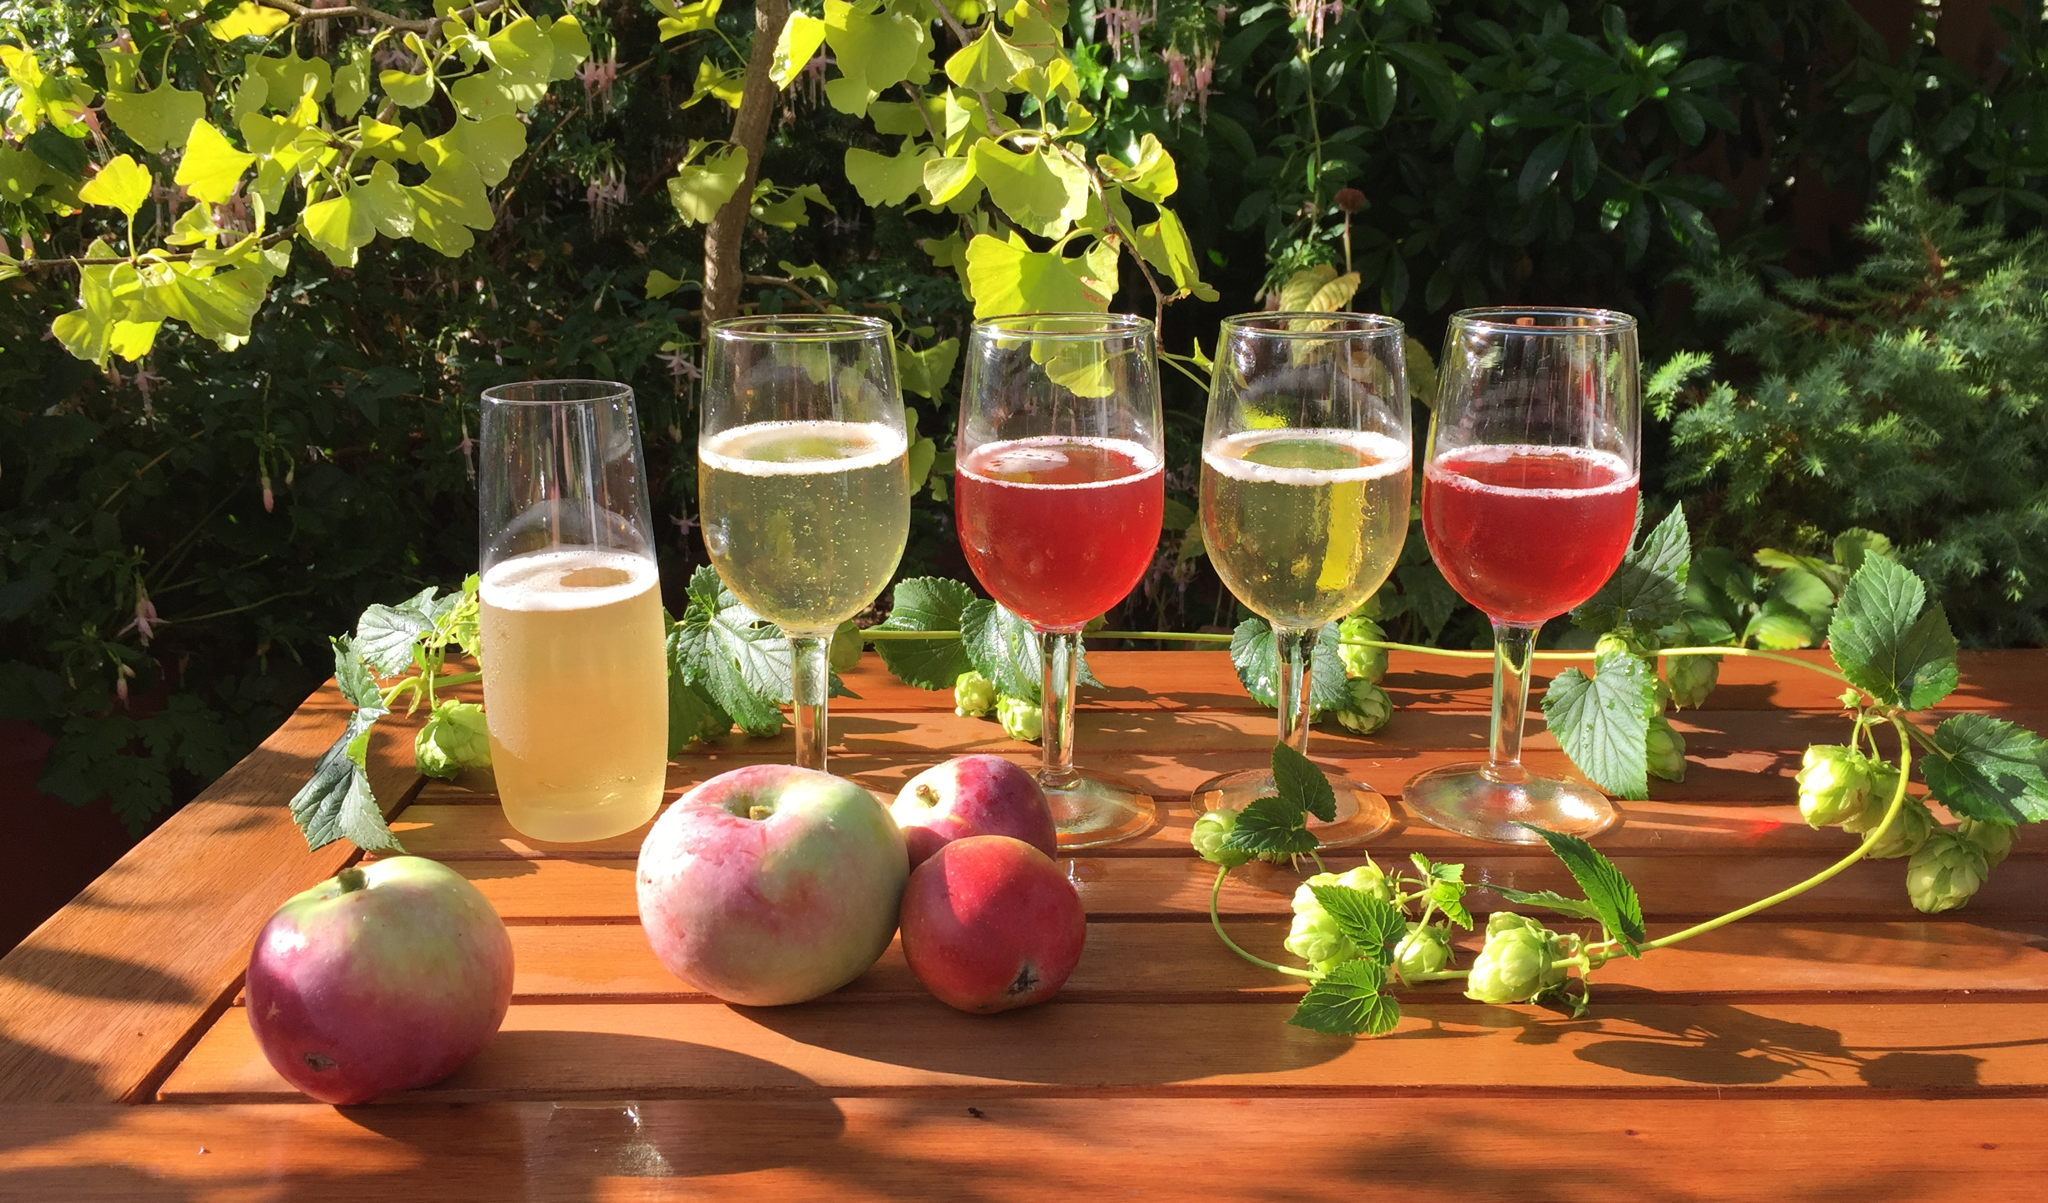 Orchard images including fig, hops and apples